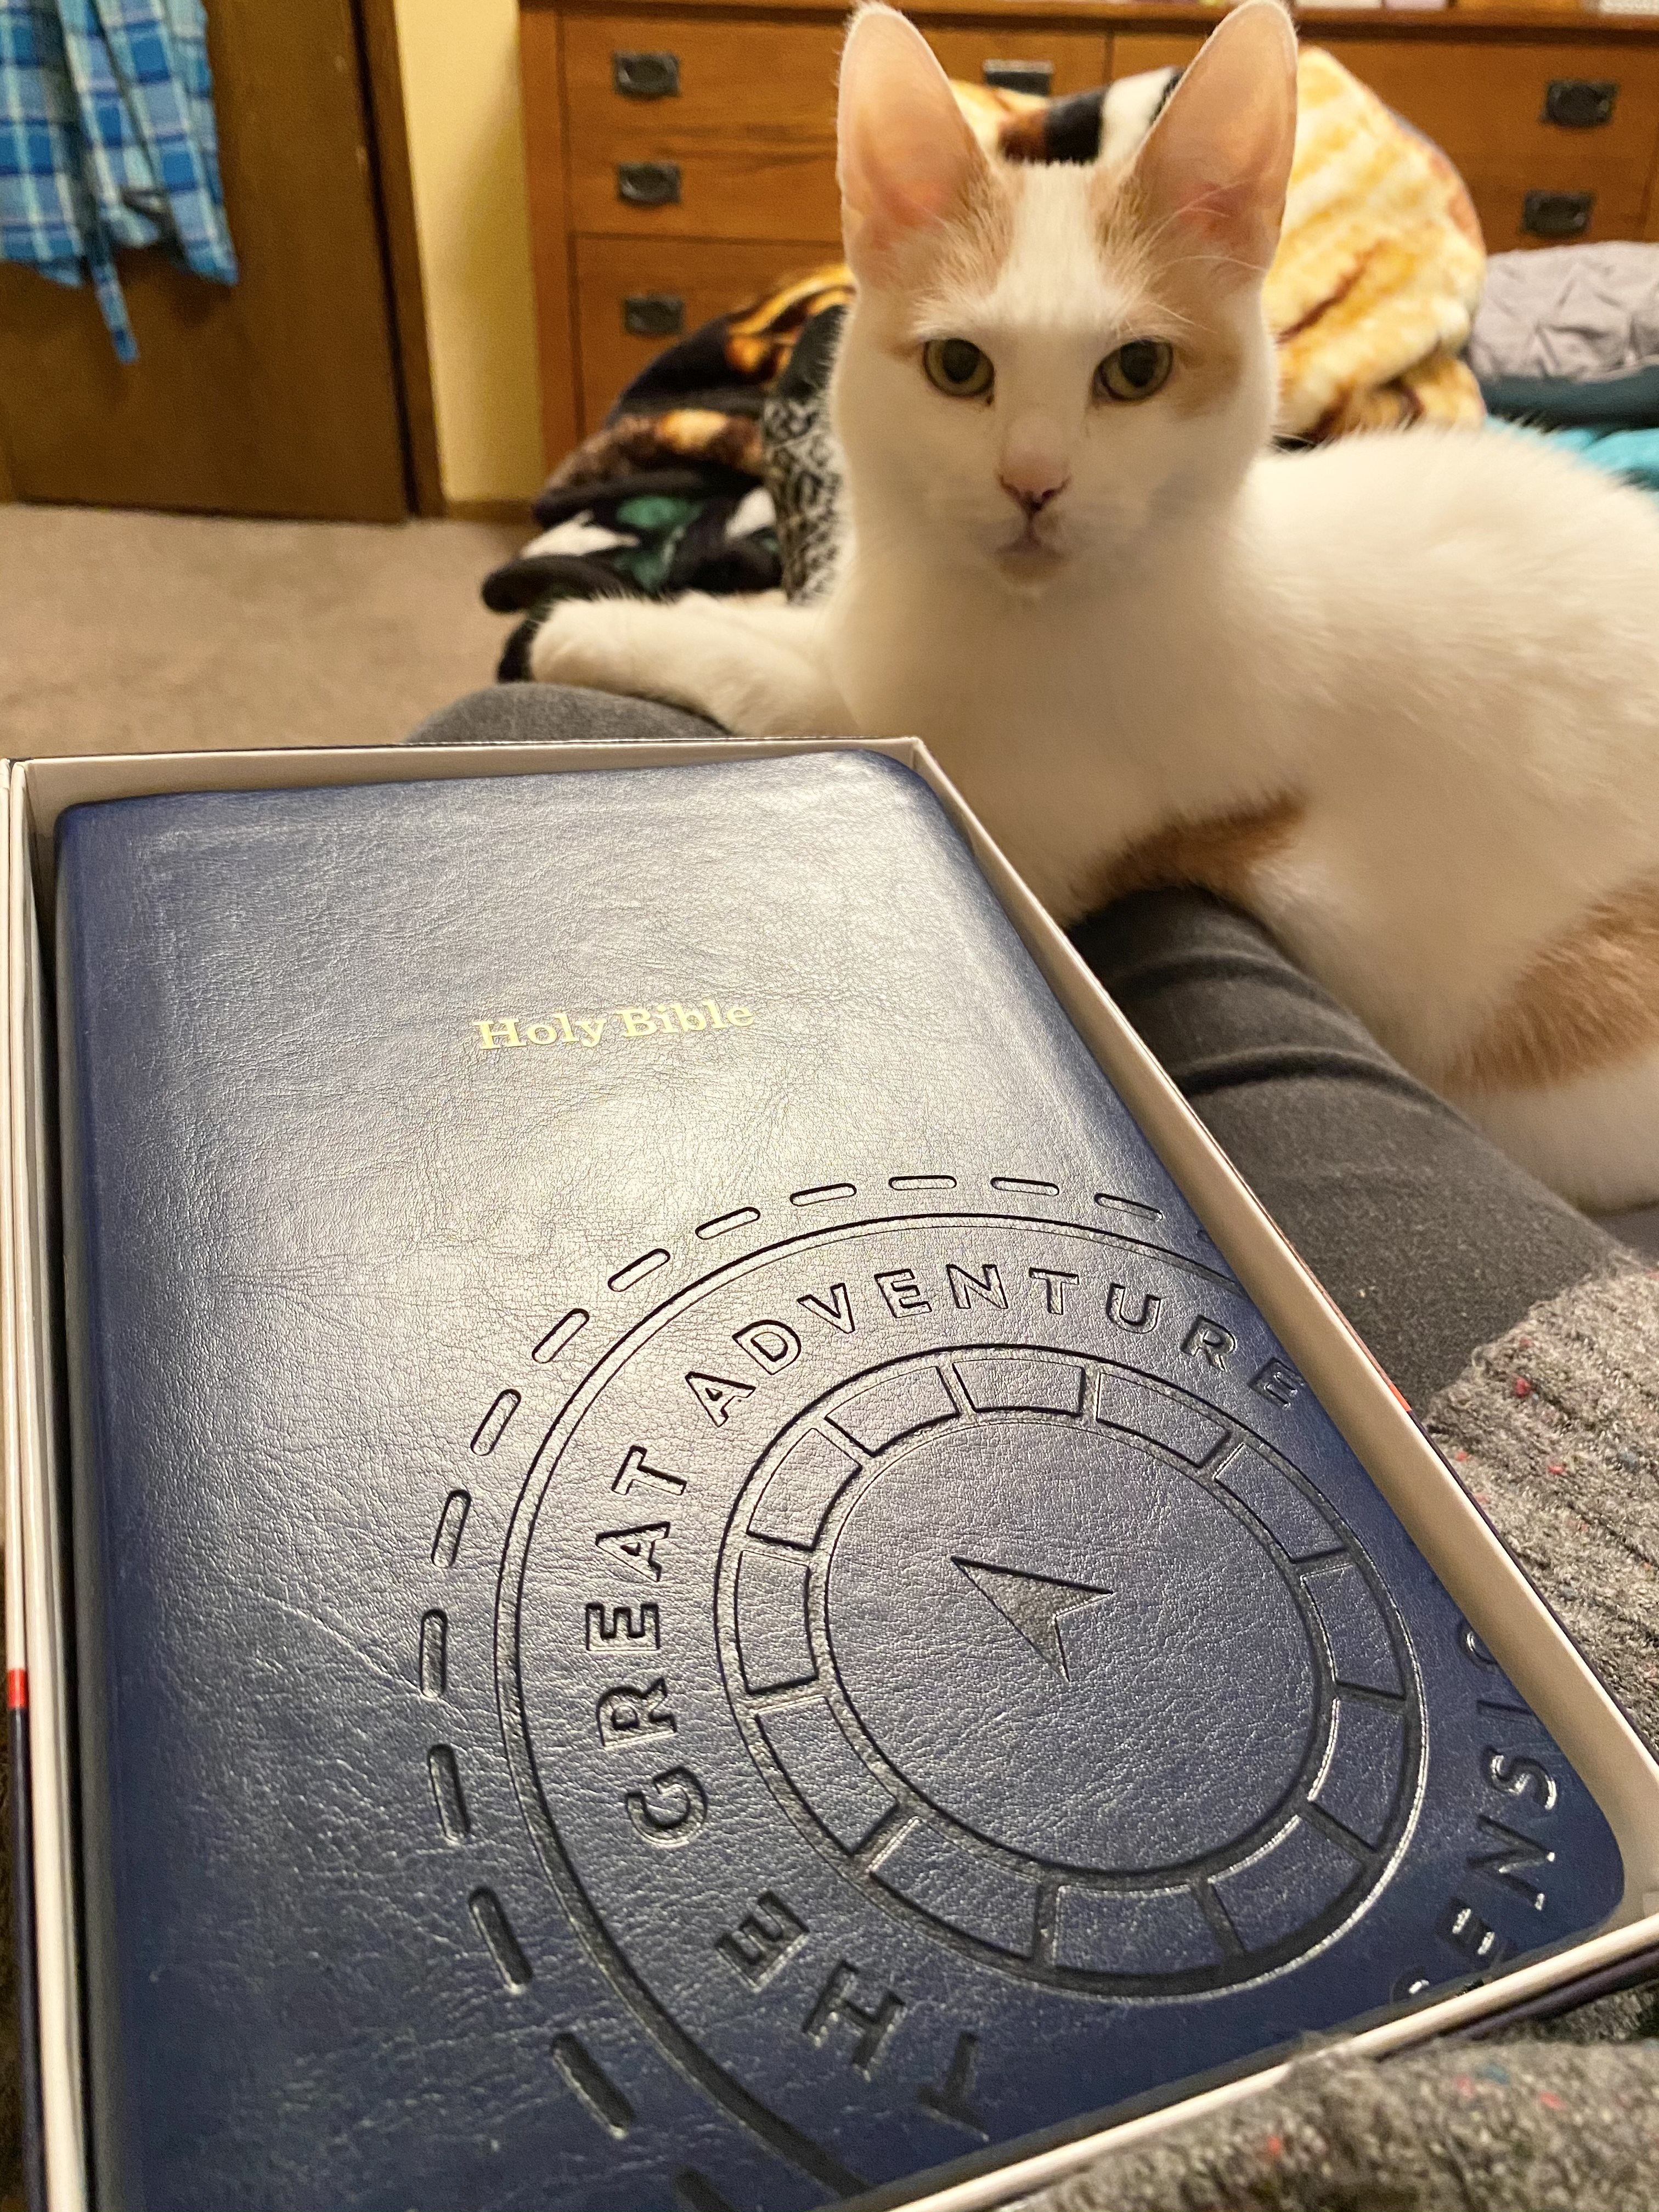 Great Adventure Bible in box, white cat looking